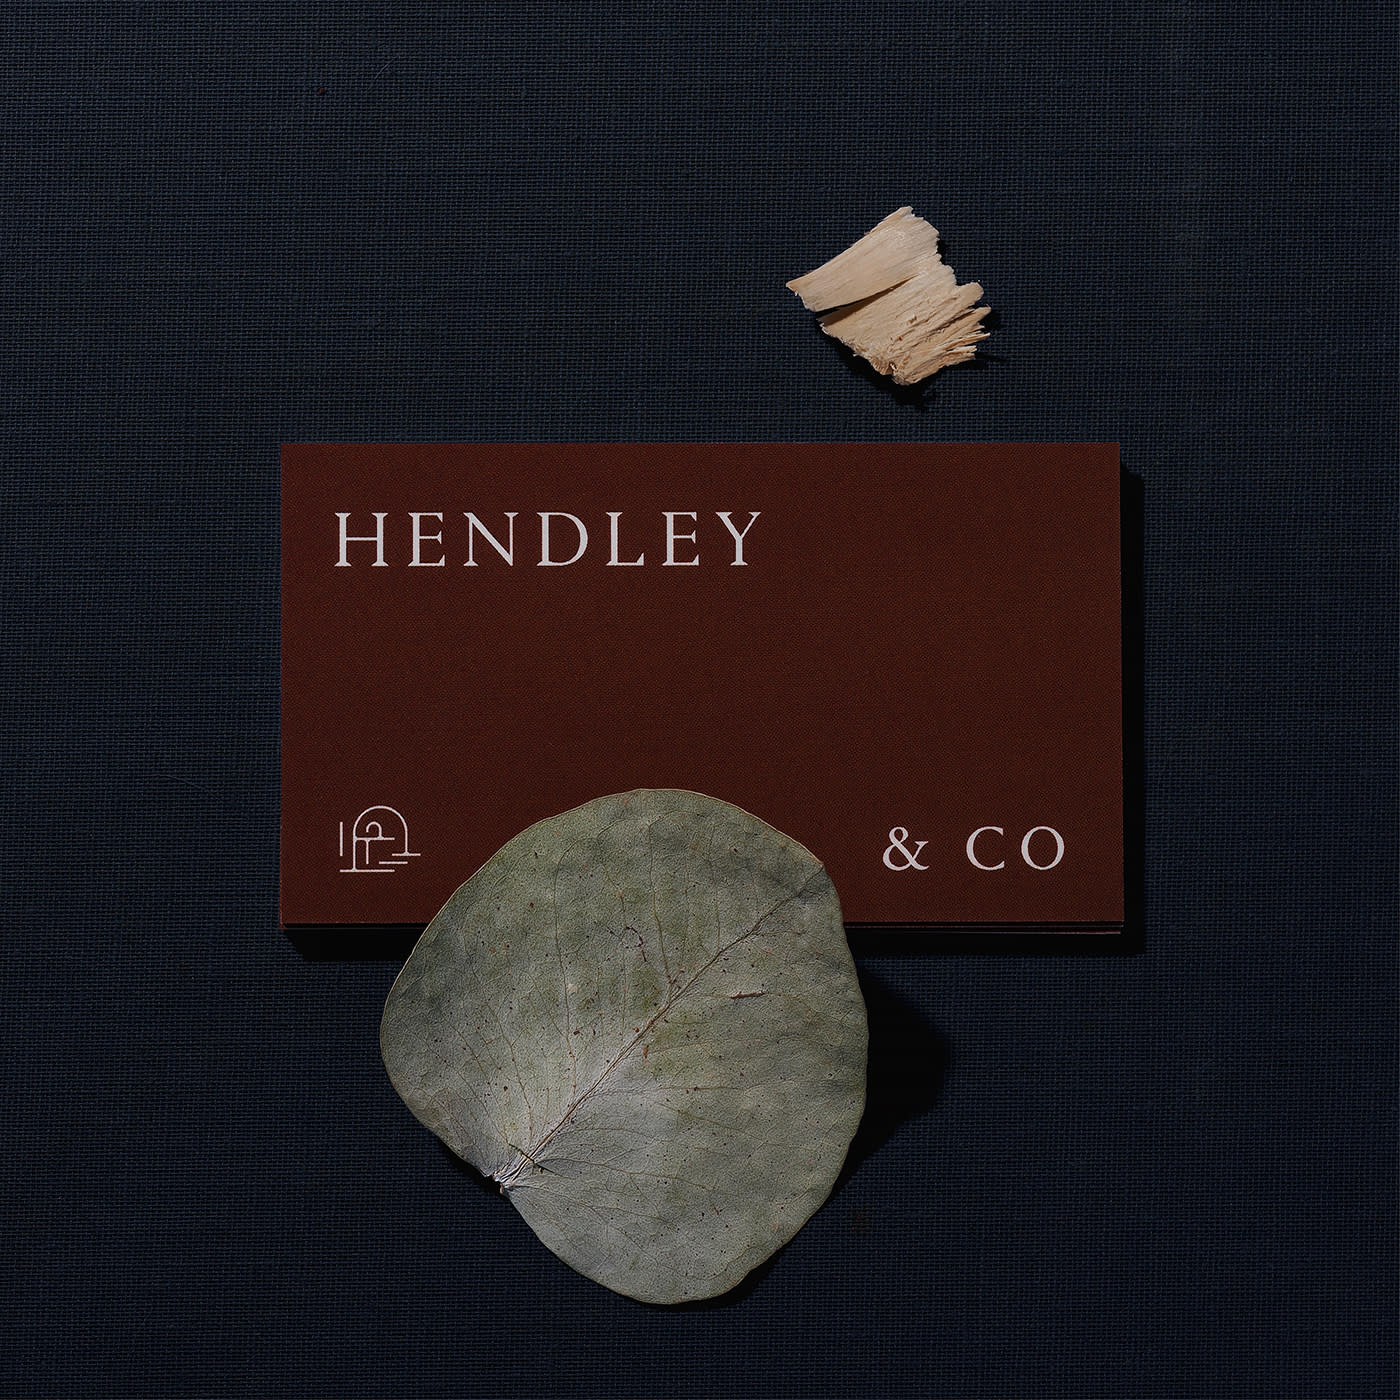 Hendley & Co, Visual Identity